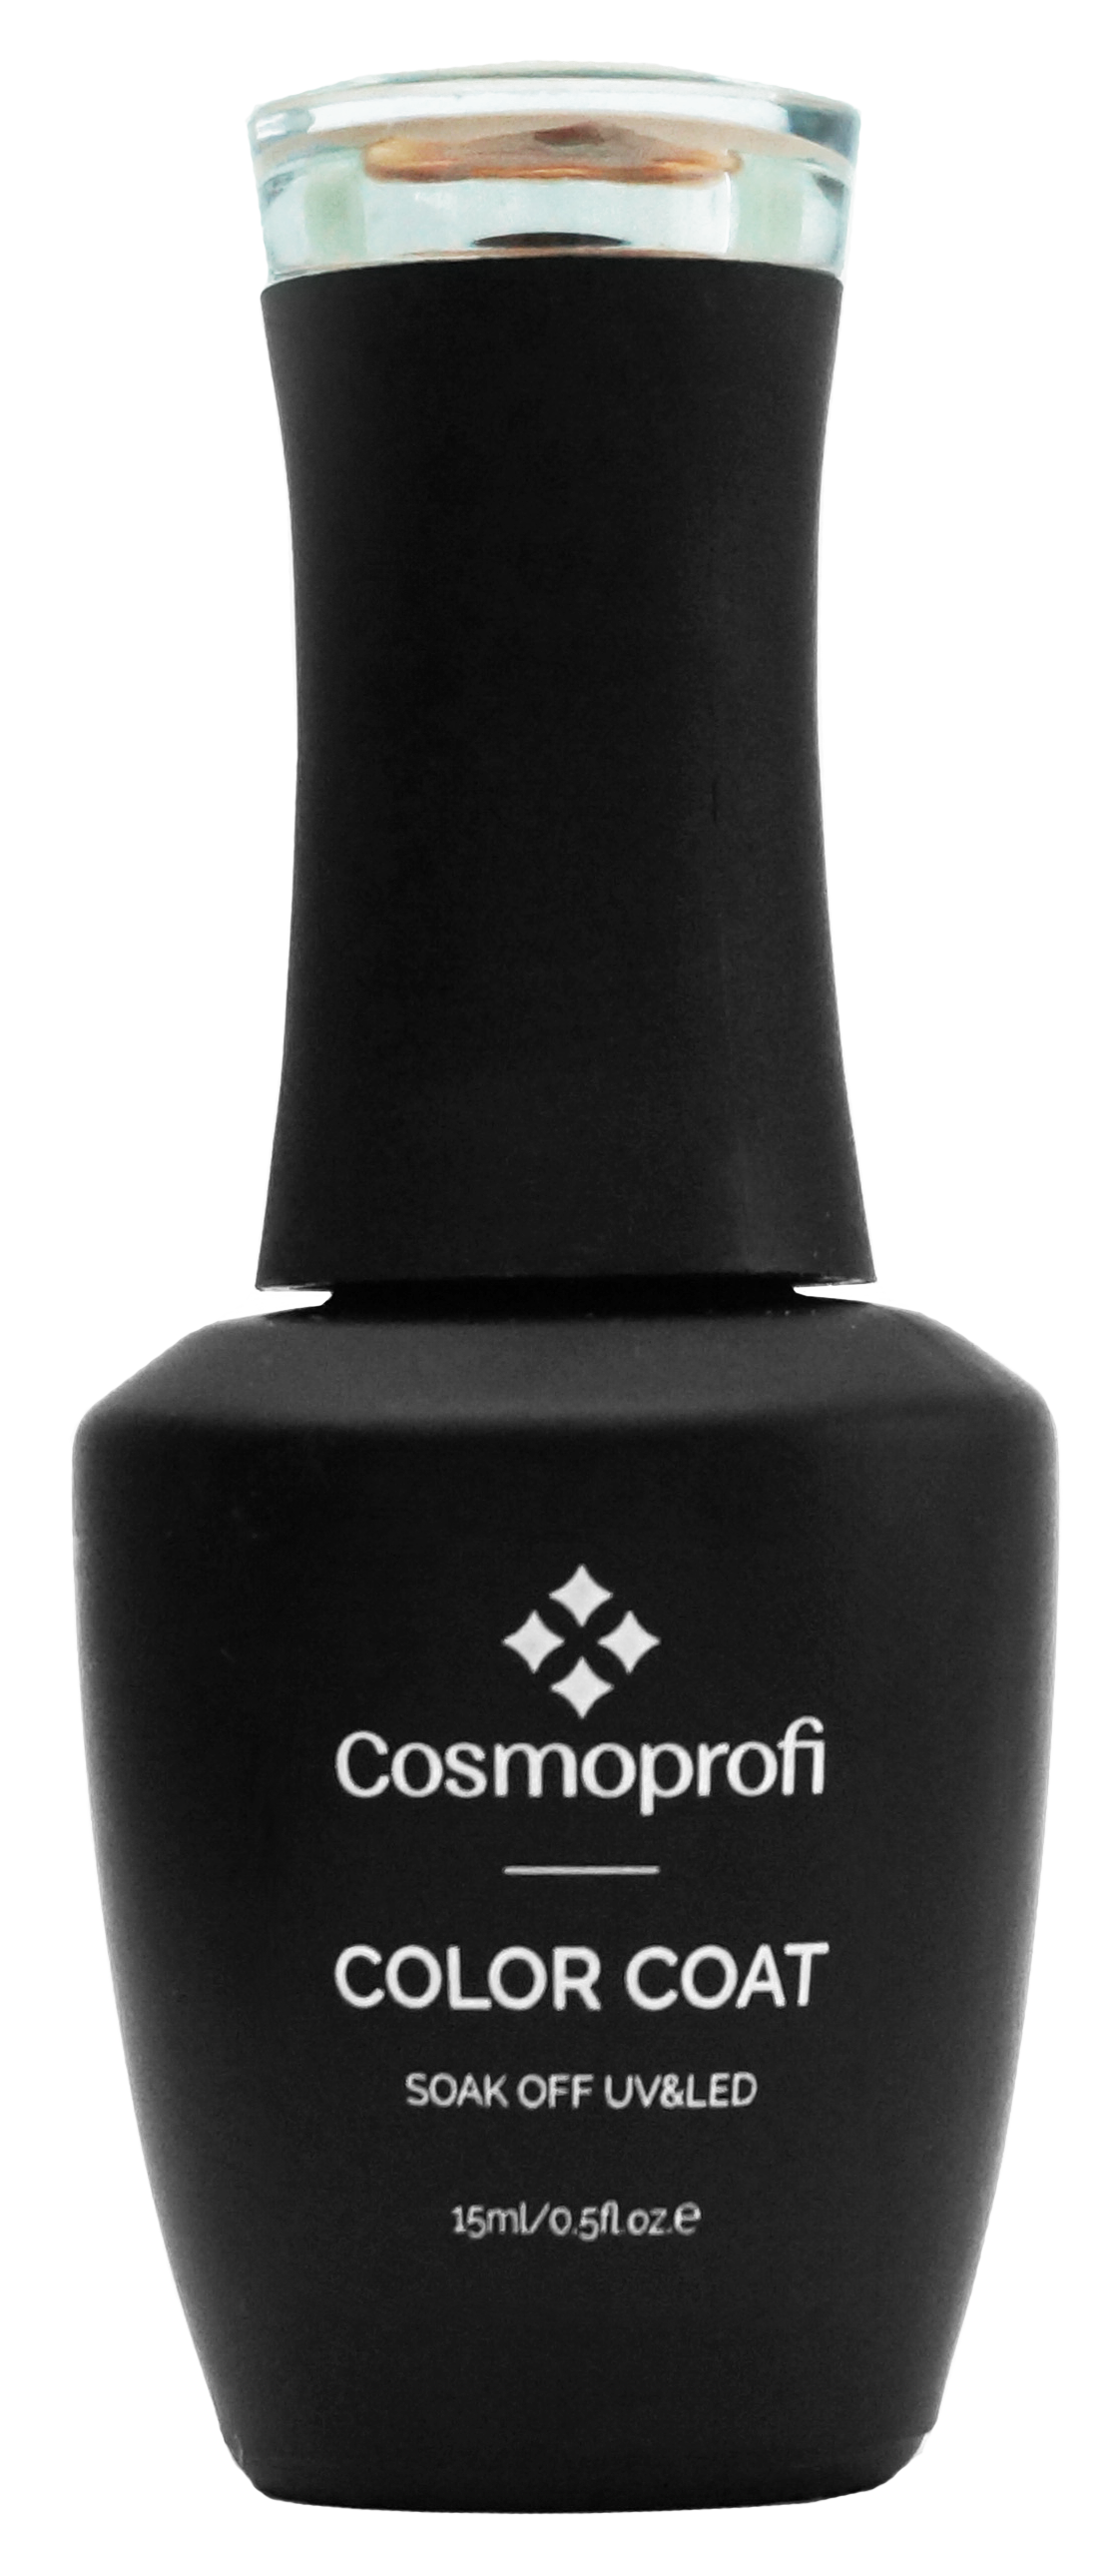 Гель-лак Cosmoprofi, Color coat № 91, 15 мл